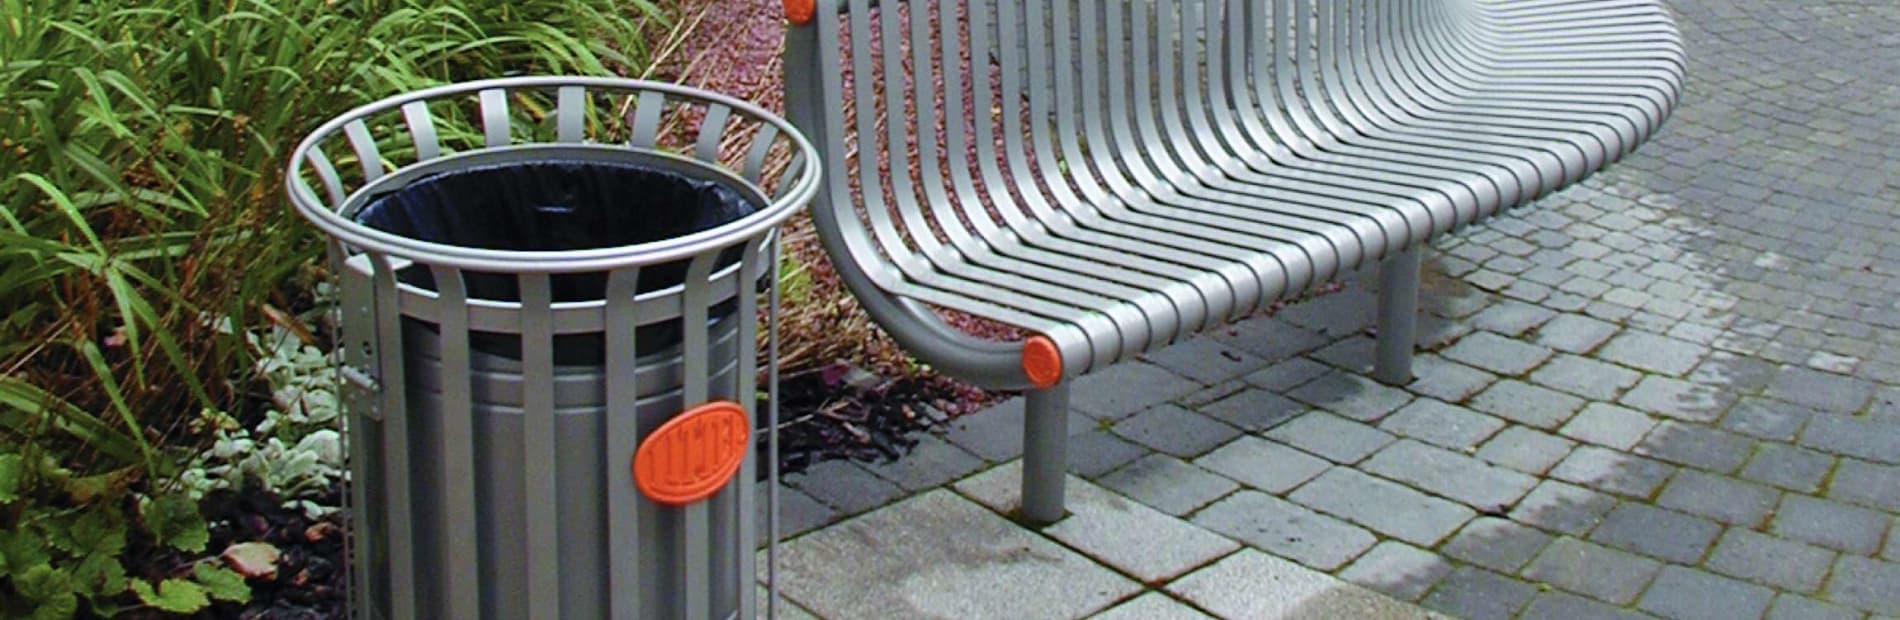 festival litter bin next to a bench